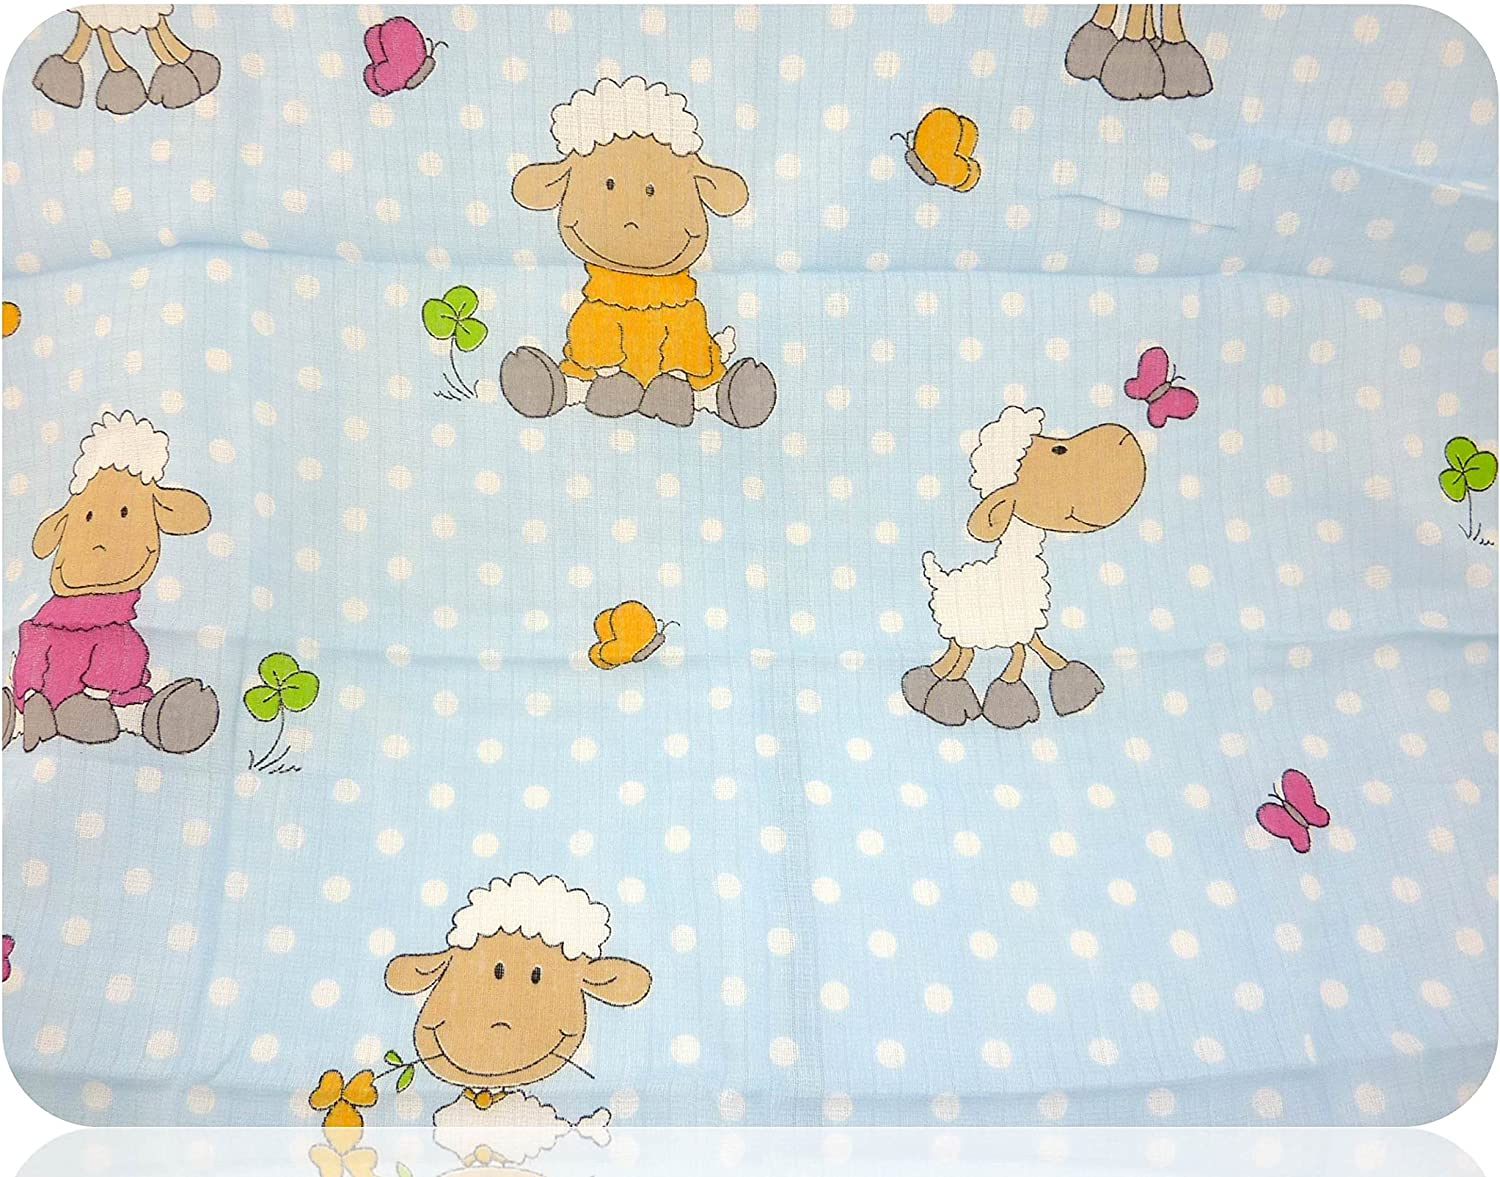 cotton 5 pack of colourful burping cloths cloth nappies Printed muslin cloths